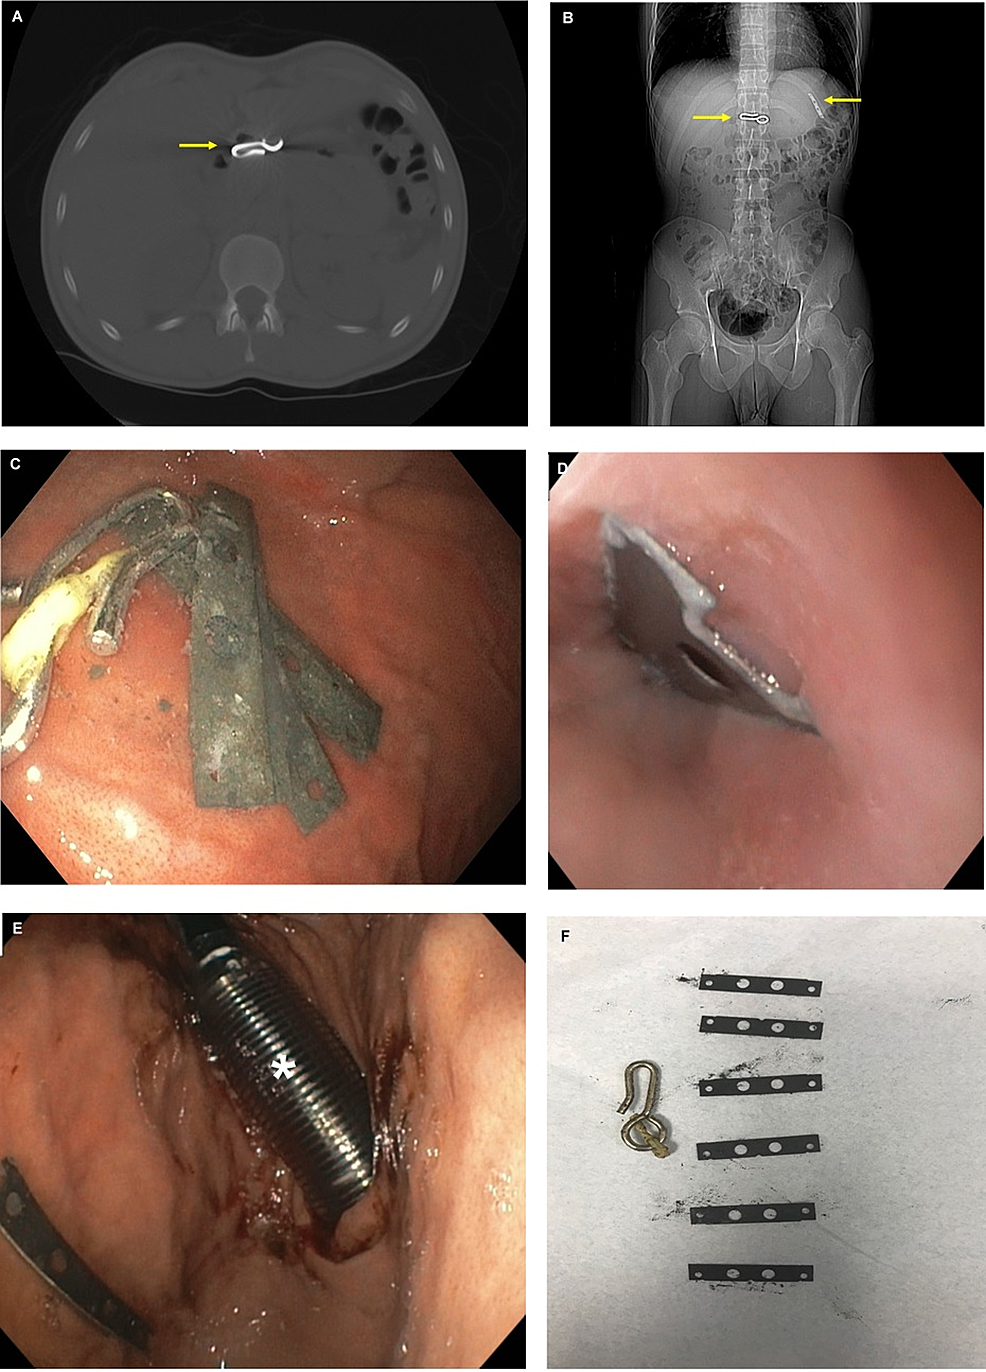 A-–-Coronal-computed-tomography-scan-of-a-curtain-hook-(arrow).-B-–-Axial-computed-tomography-scan-showing-a-curtain-hook-and-a-single-razor-blade-(arrows).-C-–-Endoscopic-visualization-of-razor-blades-and-a-curtain-hook-in-the-stomach.-D-–-Razor-blade-seen-at-the-gastroesophageal-junction.-E-–-Overtube-(asterisk)-was-used-to-protect-the-mucosal-wall-during-foreign-body-removal.-F-–-Six-razor-blades-and-a-curtain-hook-were-sequentially-removed-from-the-body-of-the-stomach.